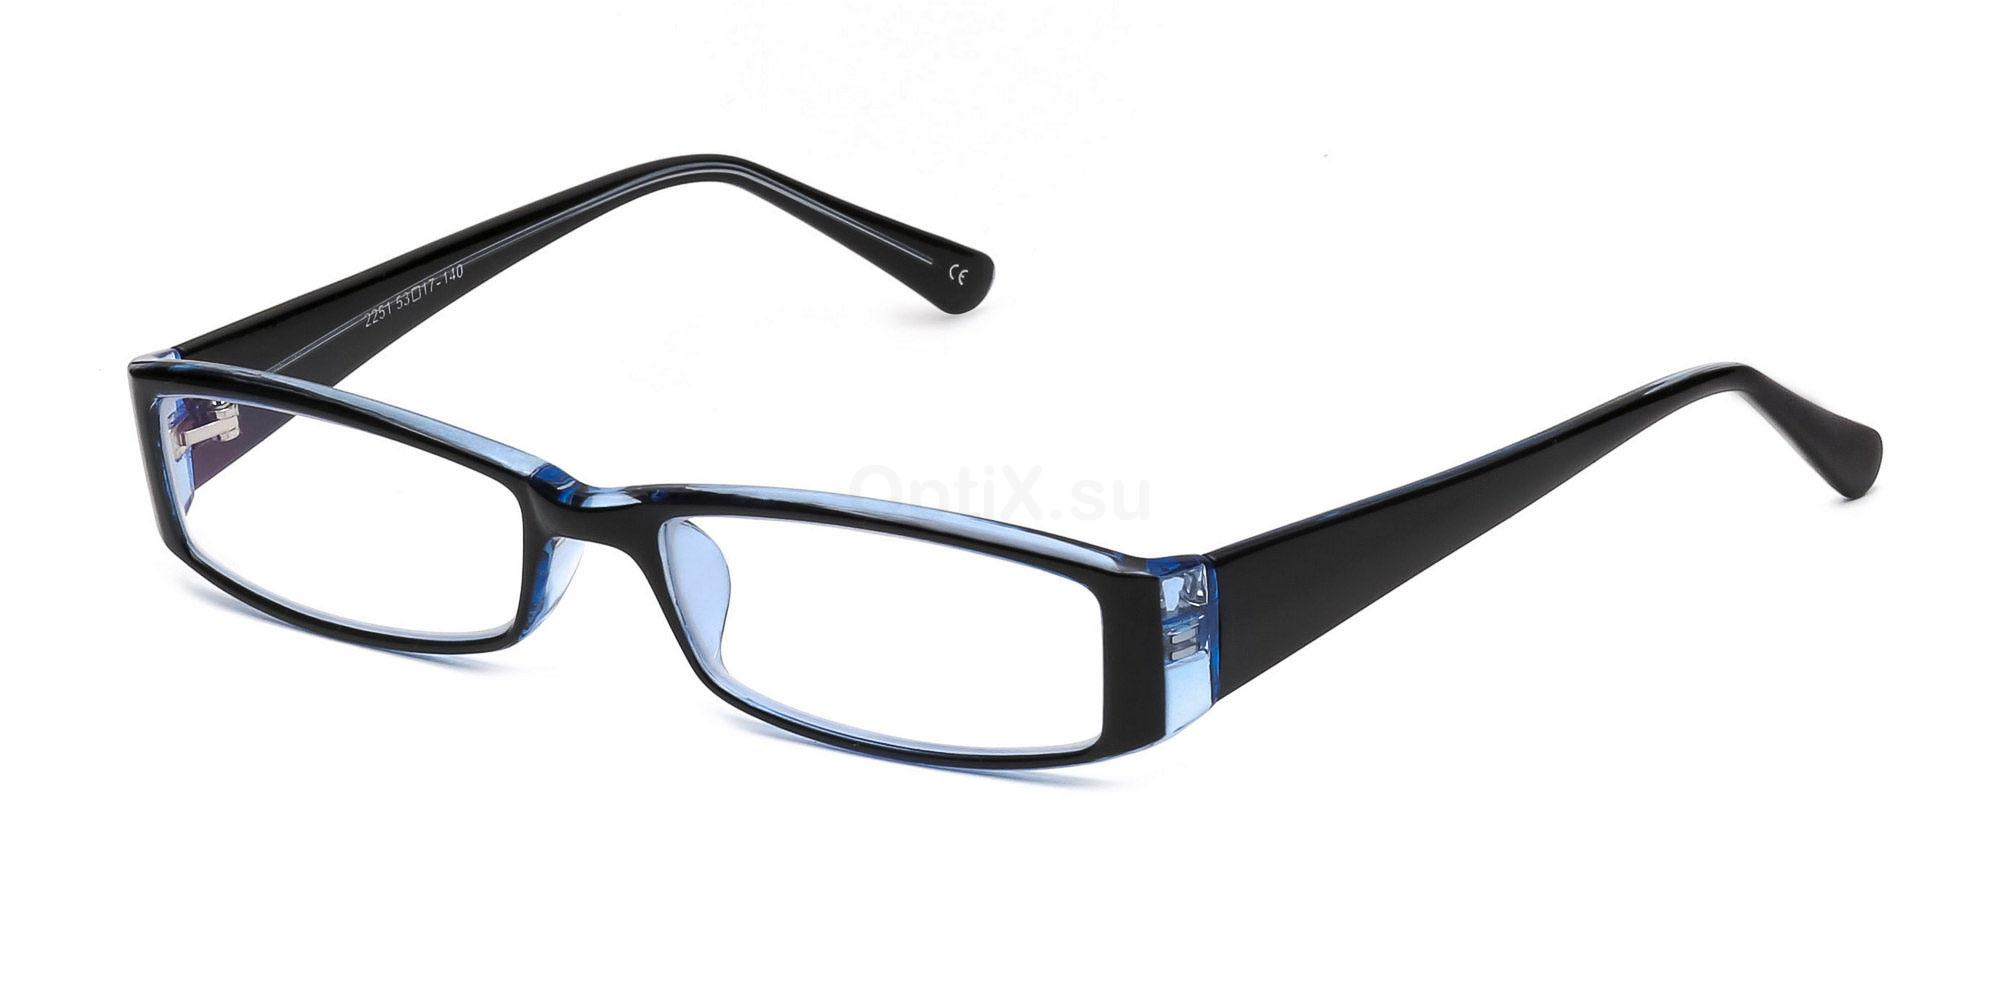 C48 P2251 - Black and Blue Glasses, SelectSpecs